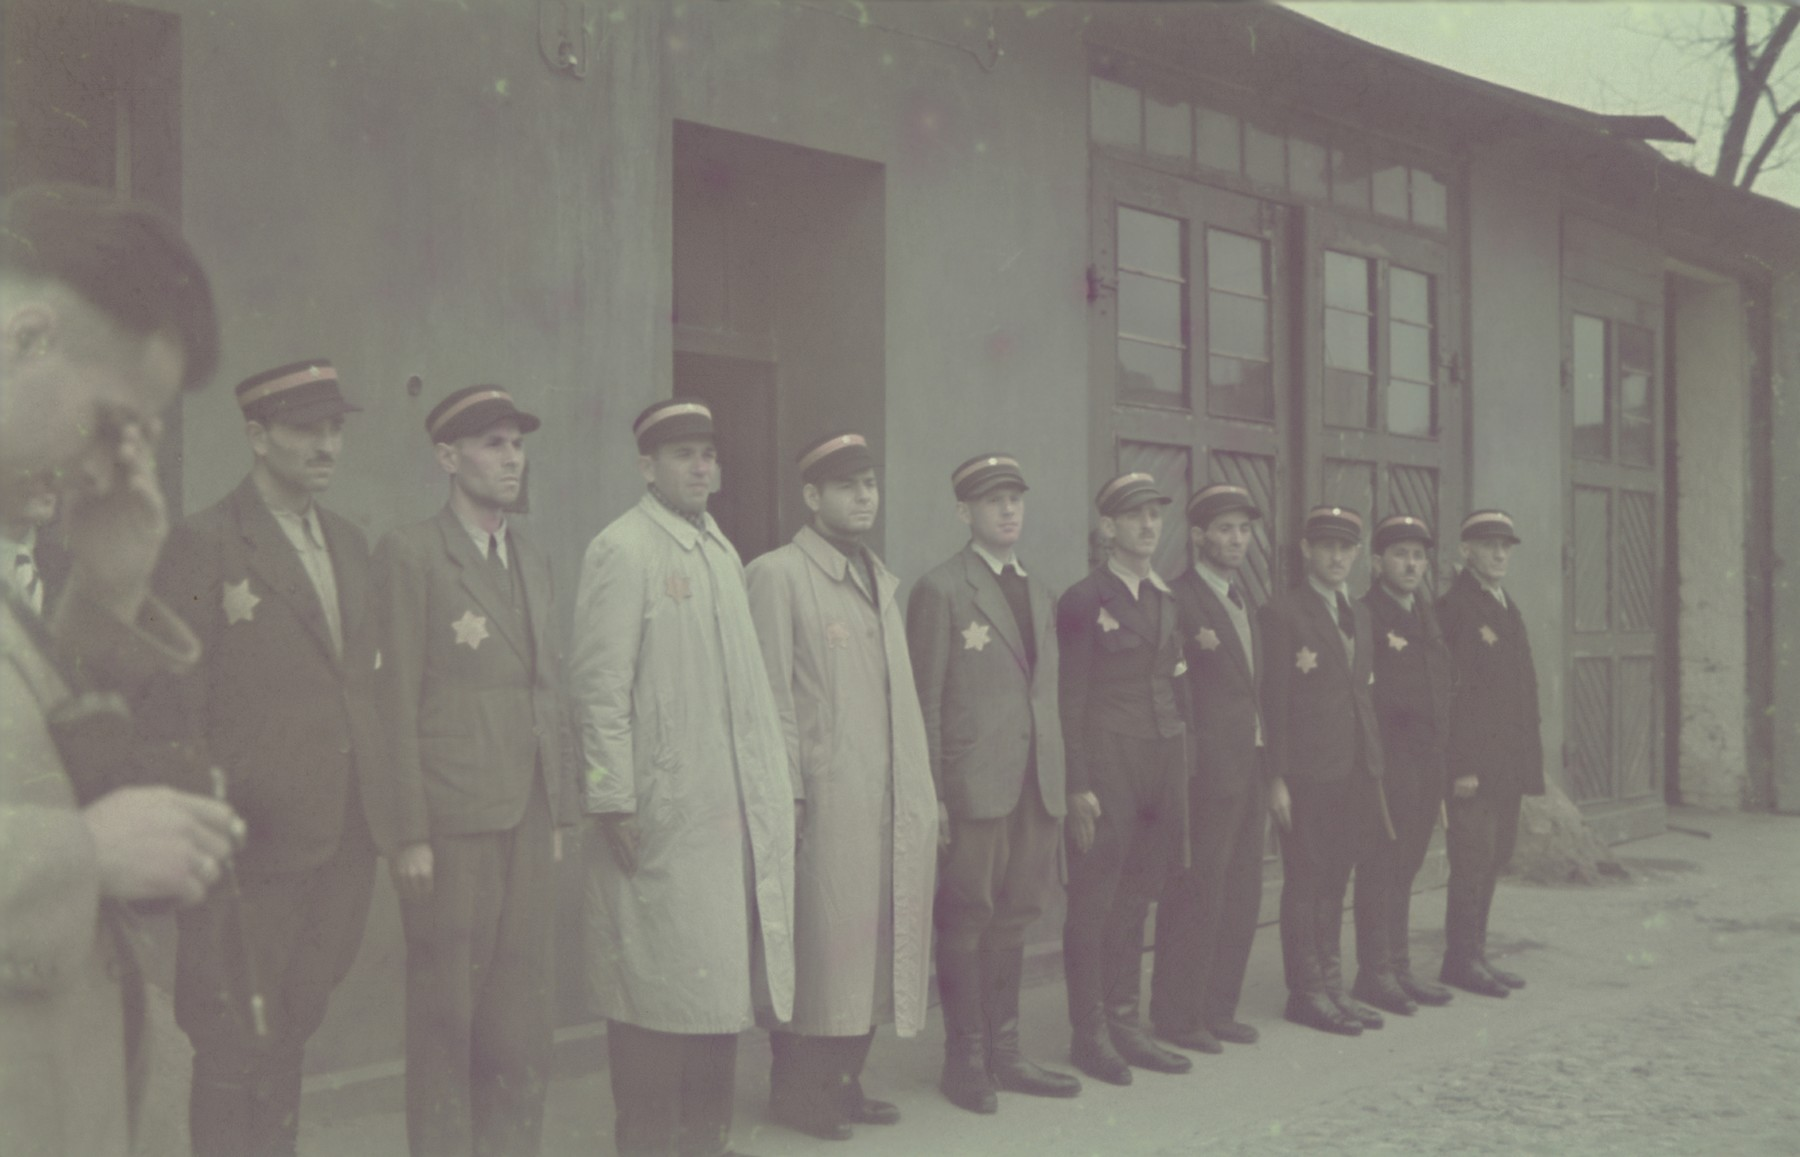 A roll call of the members of the fire brigade in the Lodz ghetto.